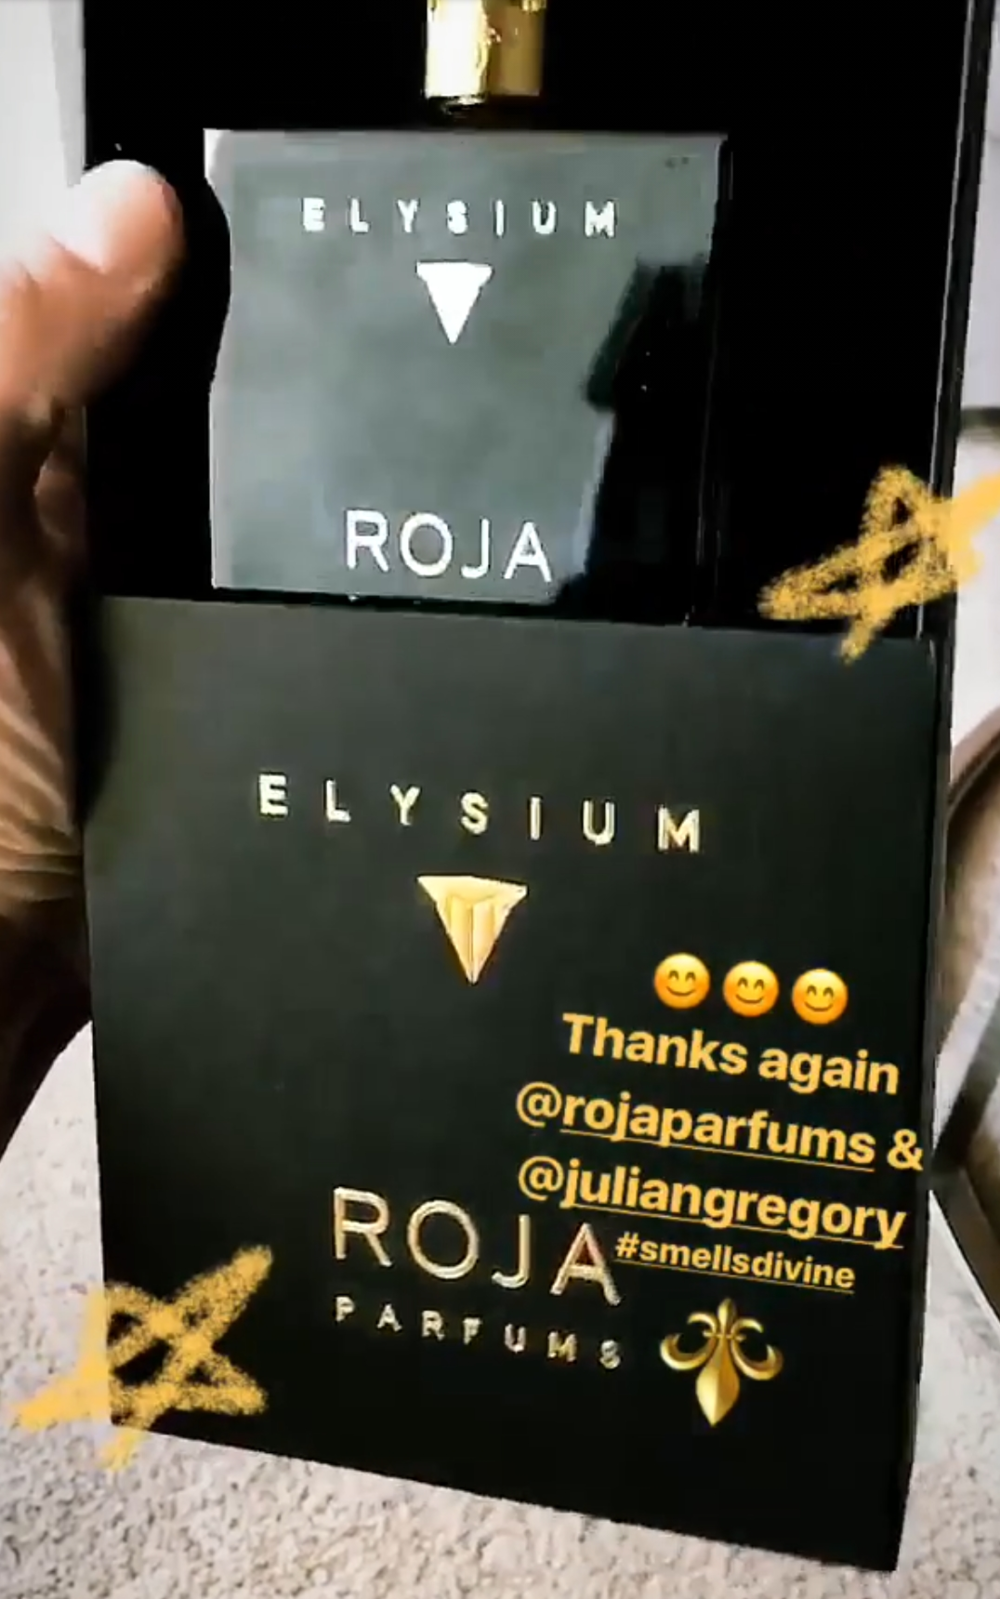 julian gregory pr, pr & marketing, public relations, london pr consultant, fashion pr, roja parfums, influencer seeding, product seeing -Jeff Thomas.png